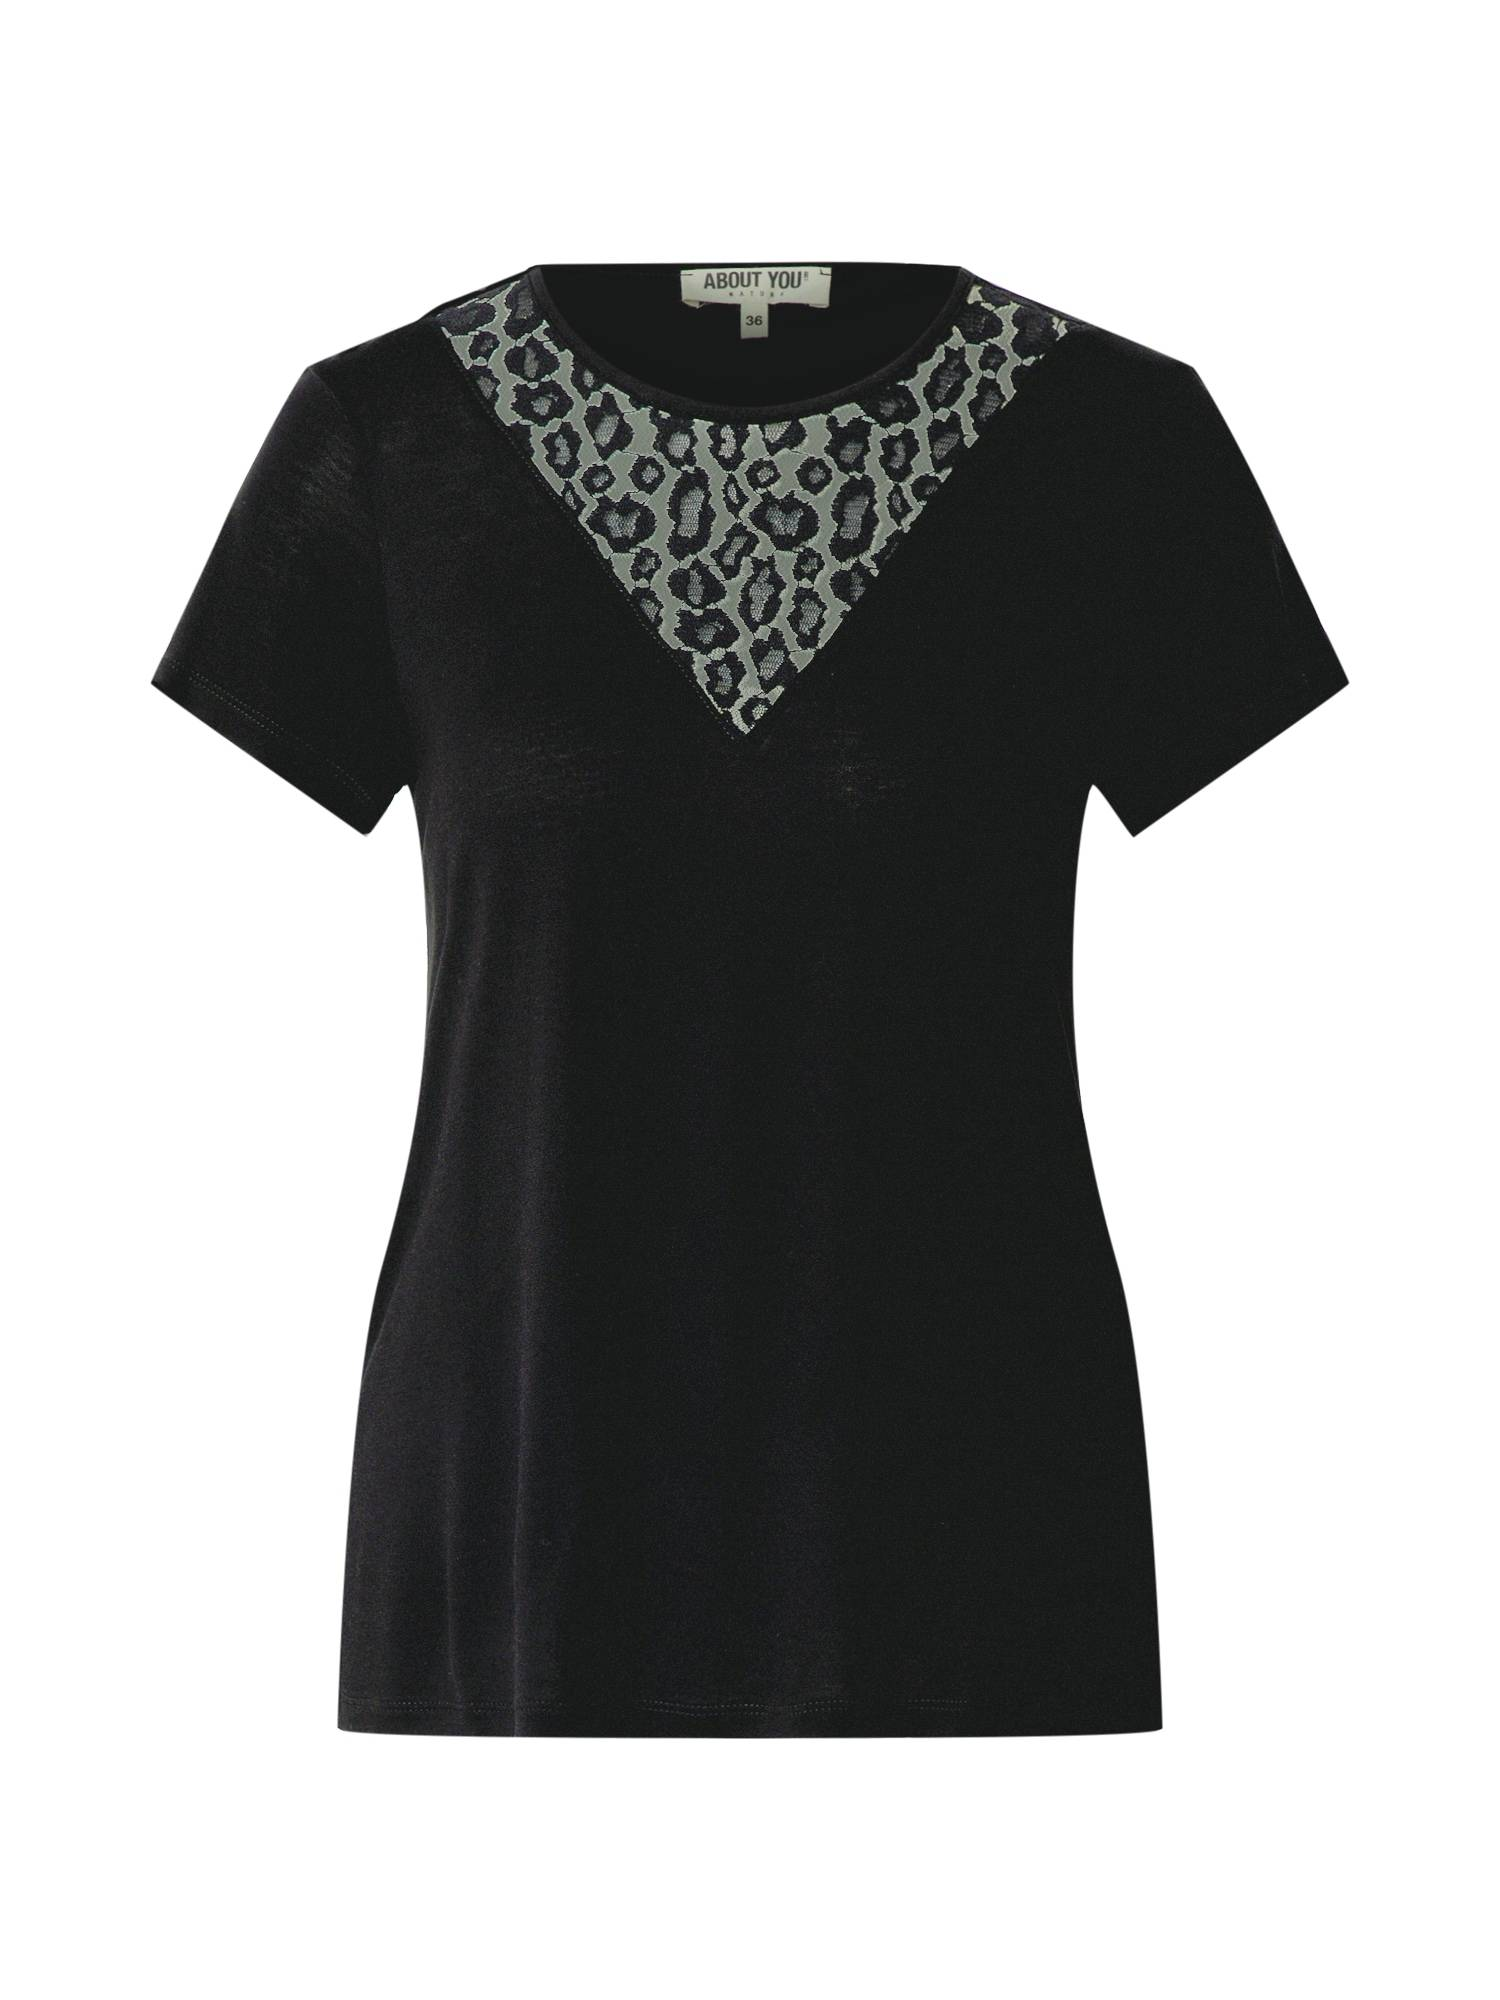 ABOUT YOU T-shirt 'Erin'  - Noir - Taille: 44 - female